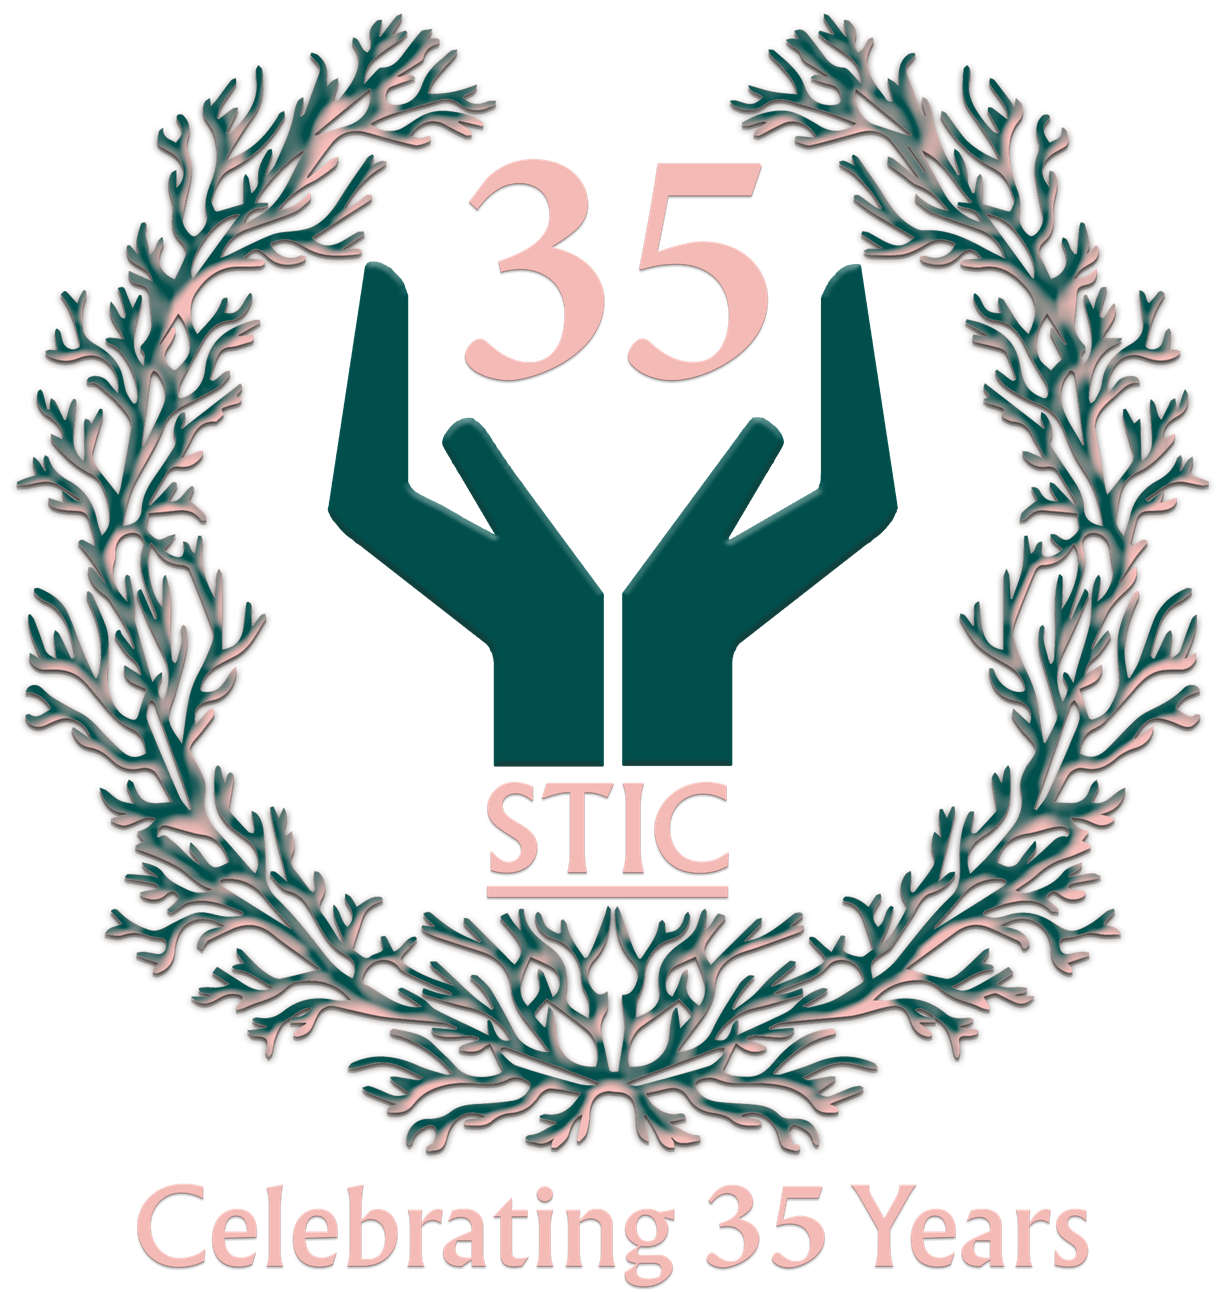 35 year logo, with coral reef laurel and stic logo hands holding the number 30